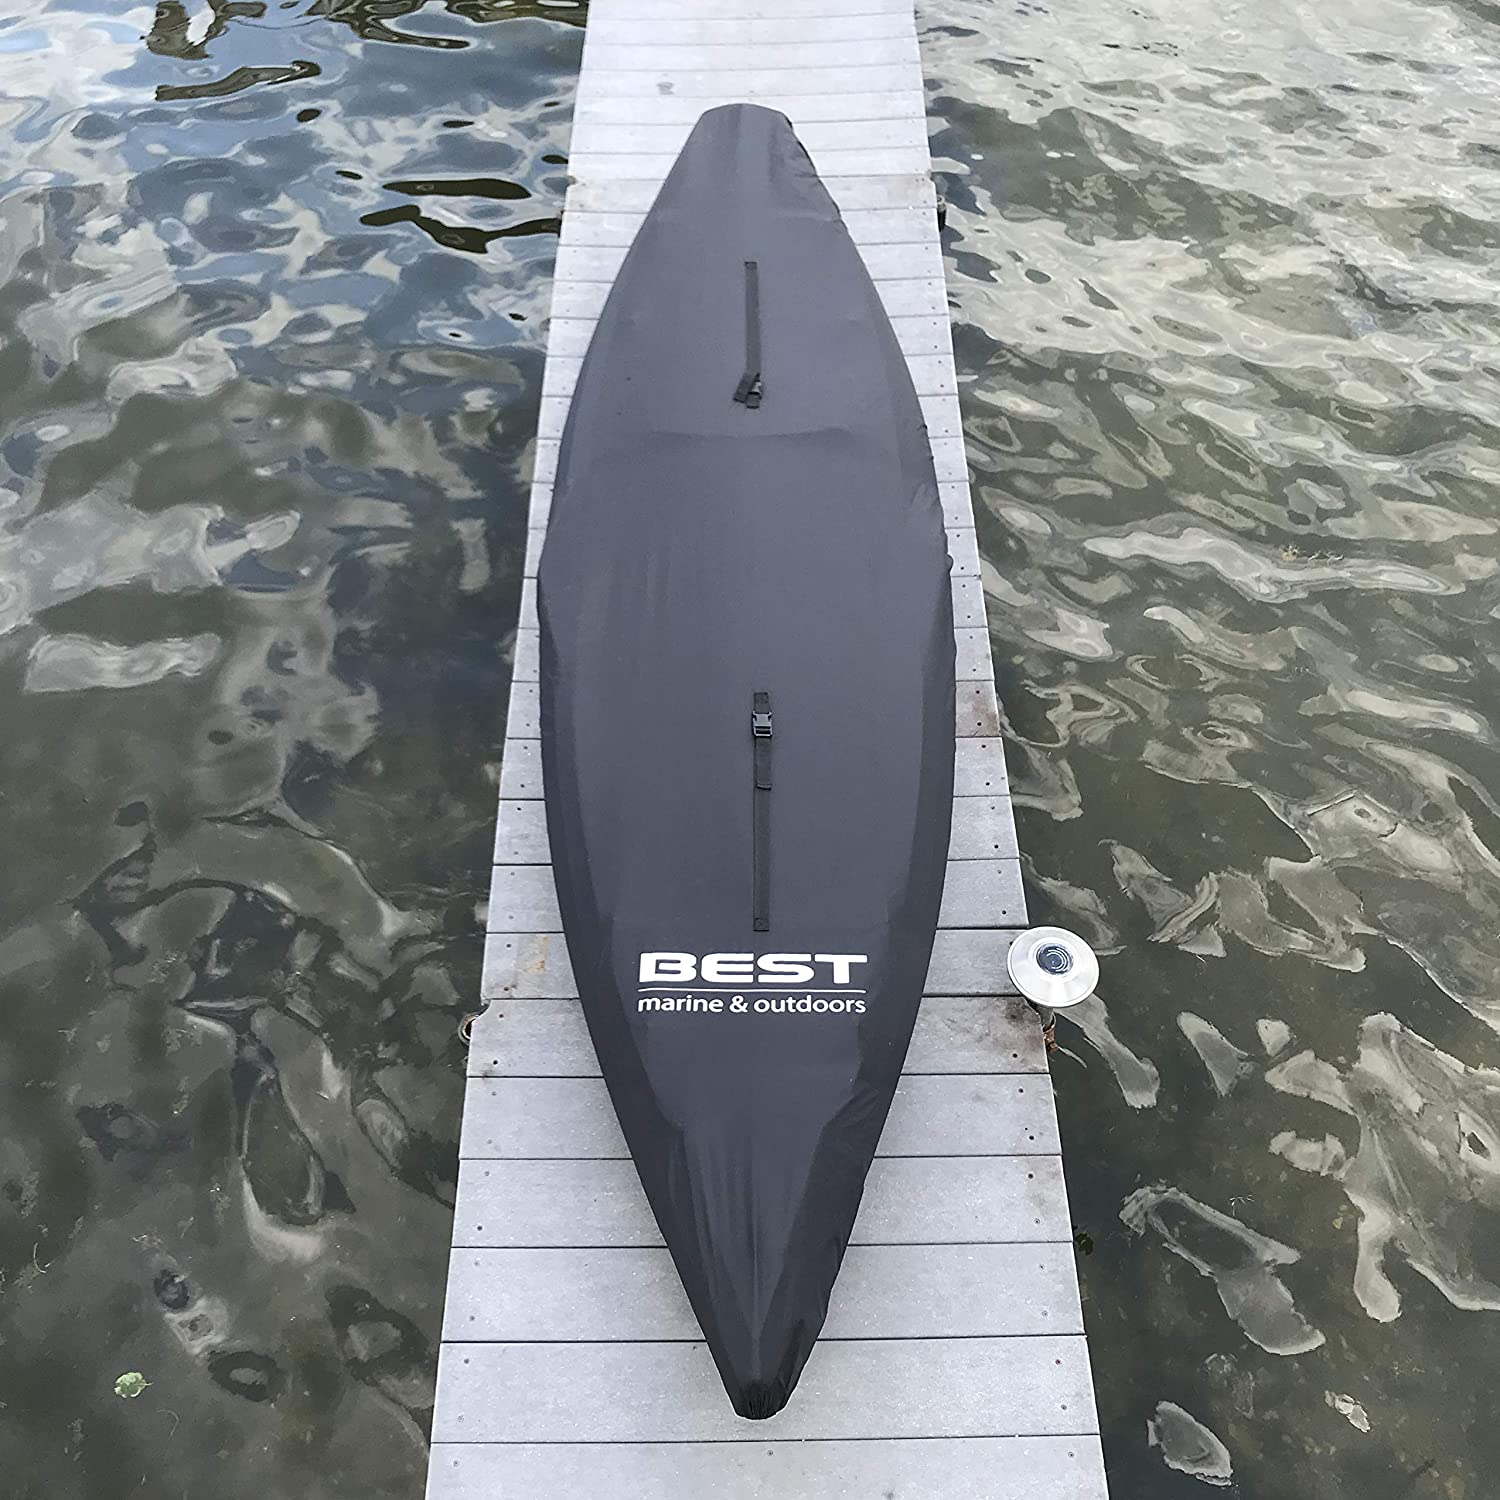 Kayak Accessories Heavy Duty UV Protection 3.8-4 meters Canoe Marine Boat Cover